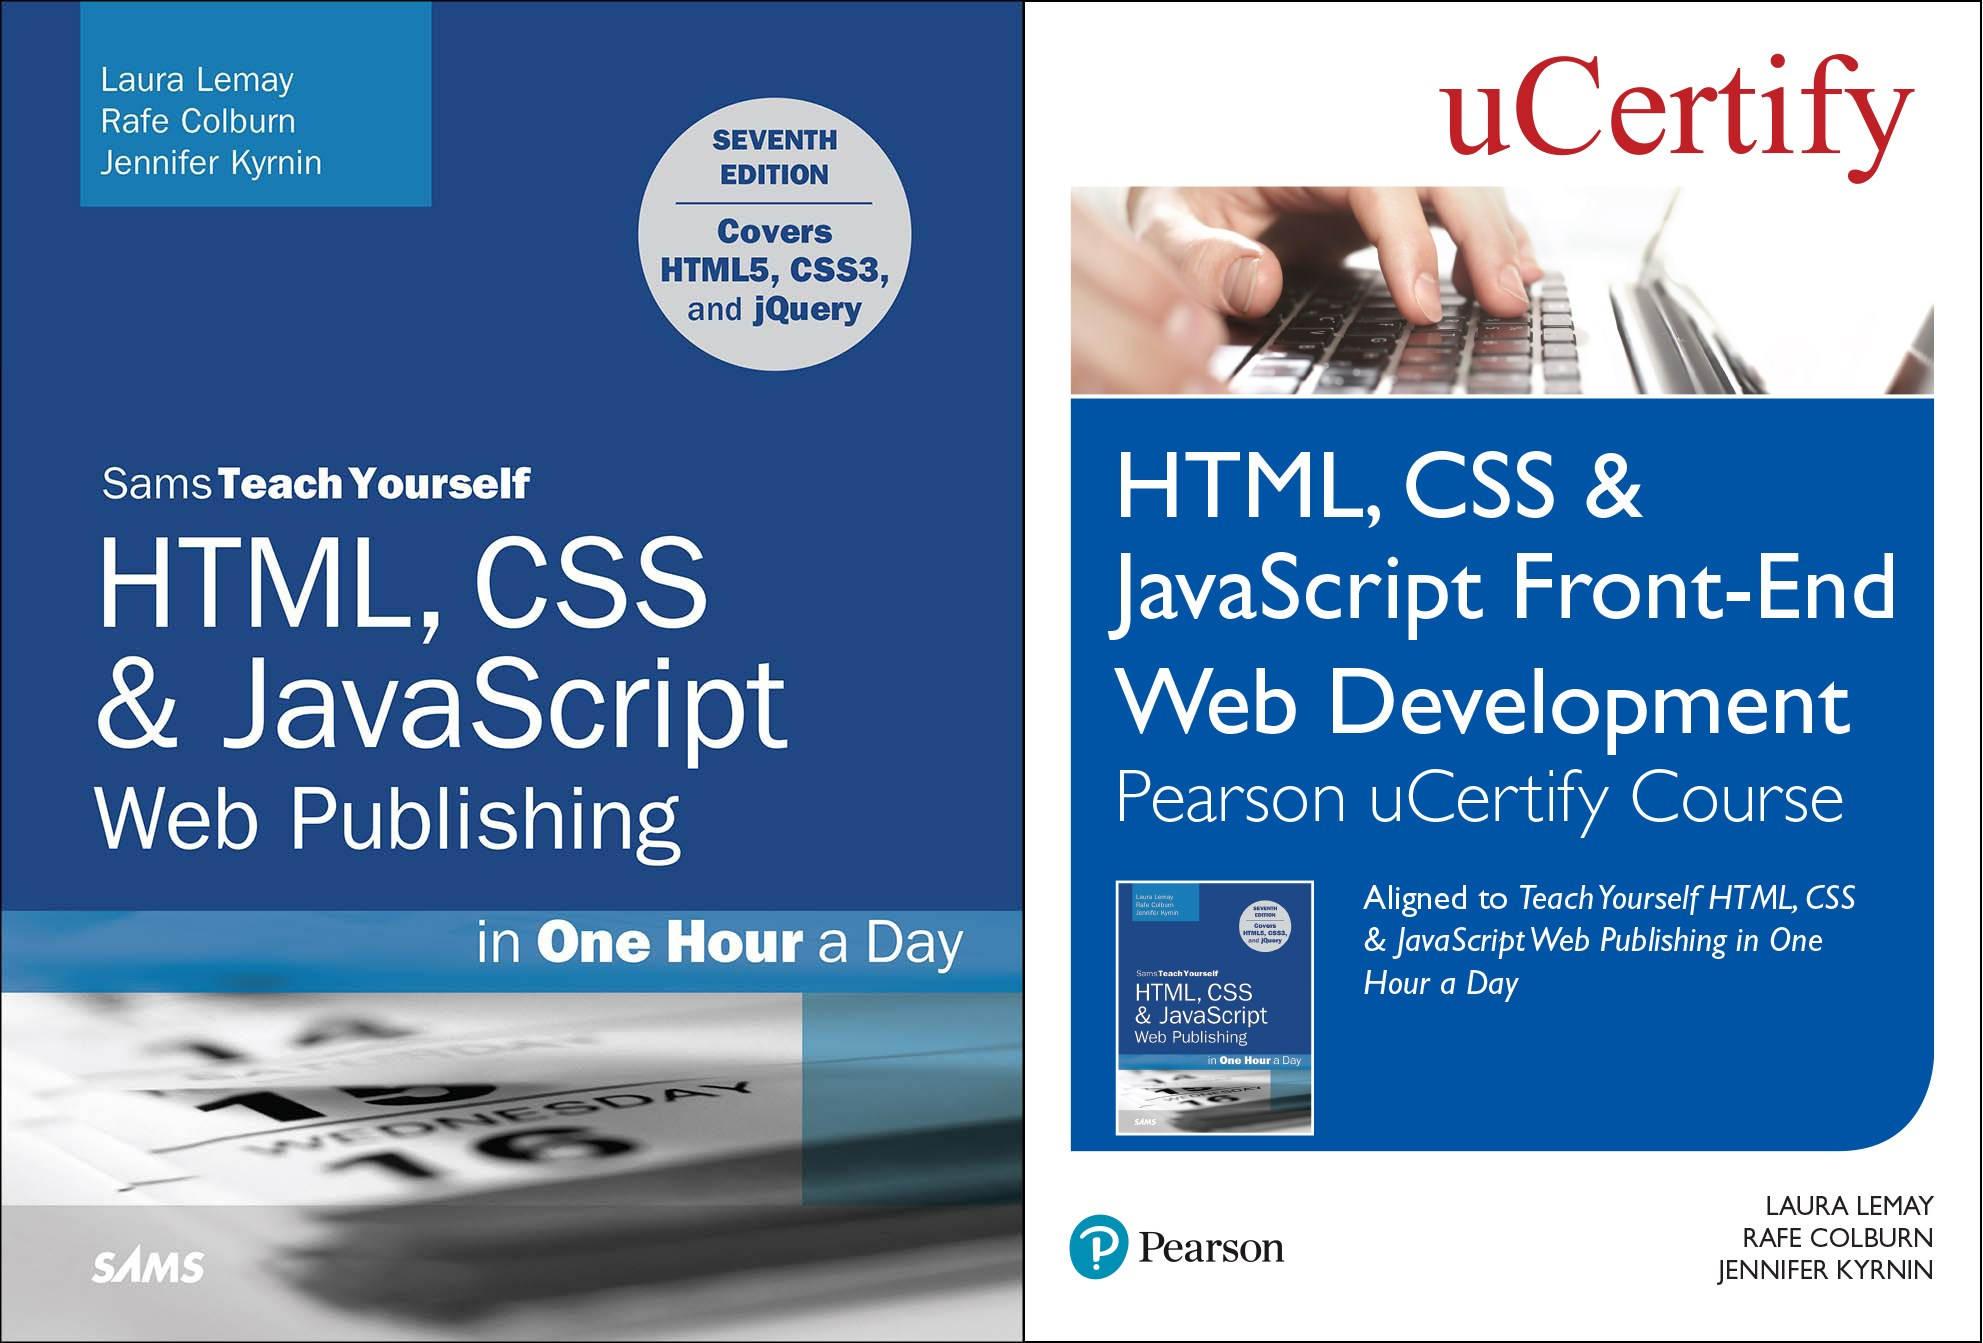 HTML, CSS & JavaScript Front-End Web Development Pearson uCertify Course and In One Hour a Day Textbook Bundle